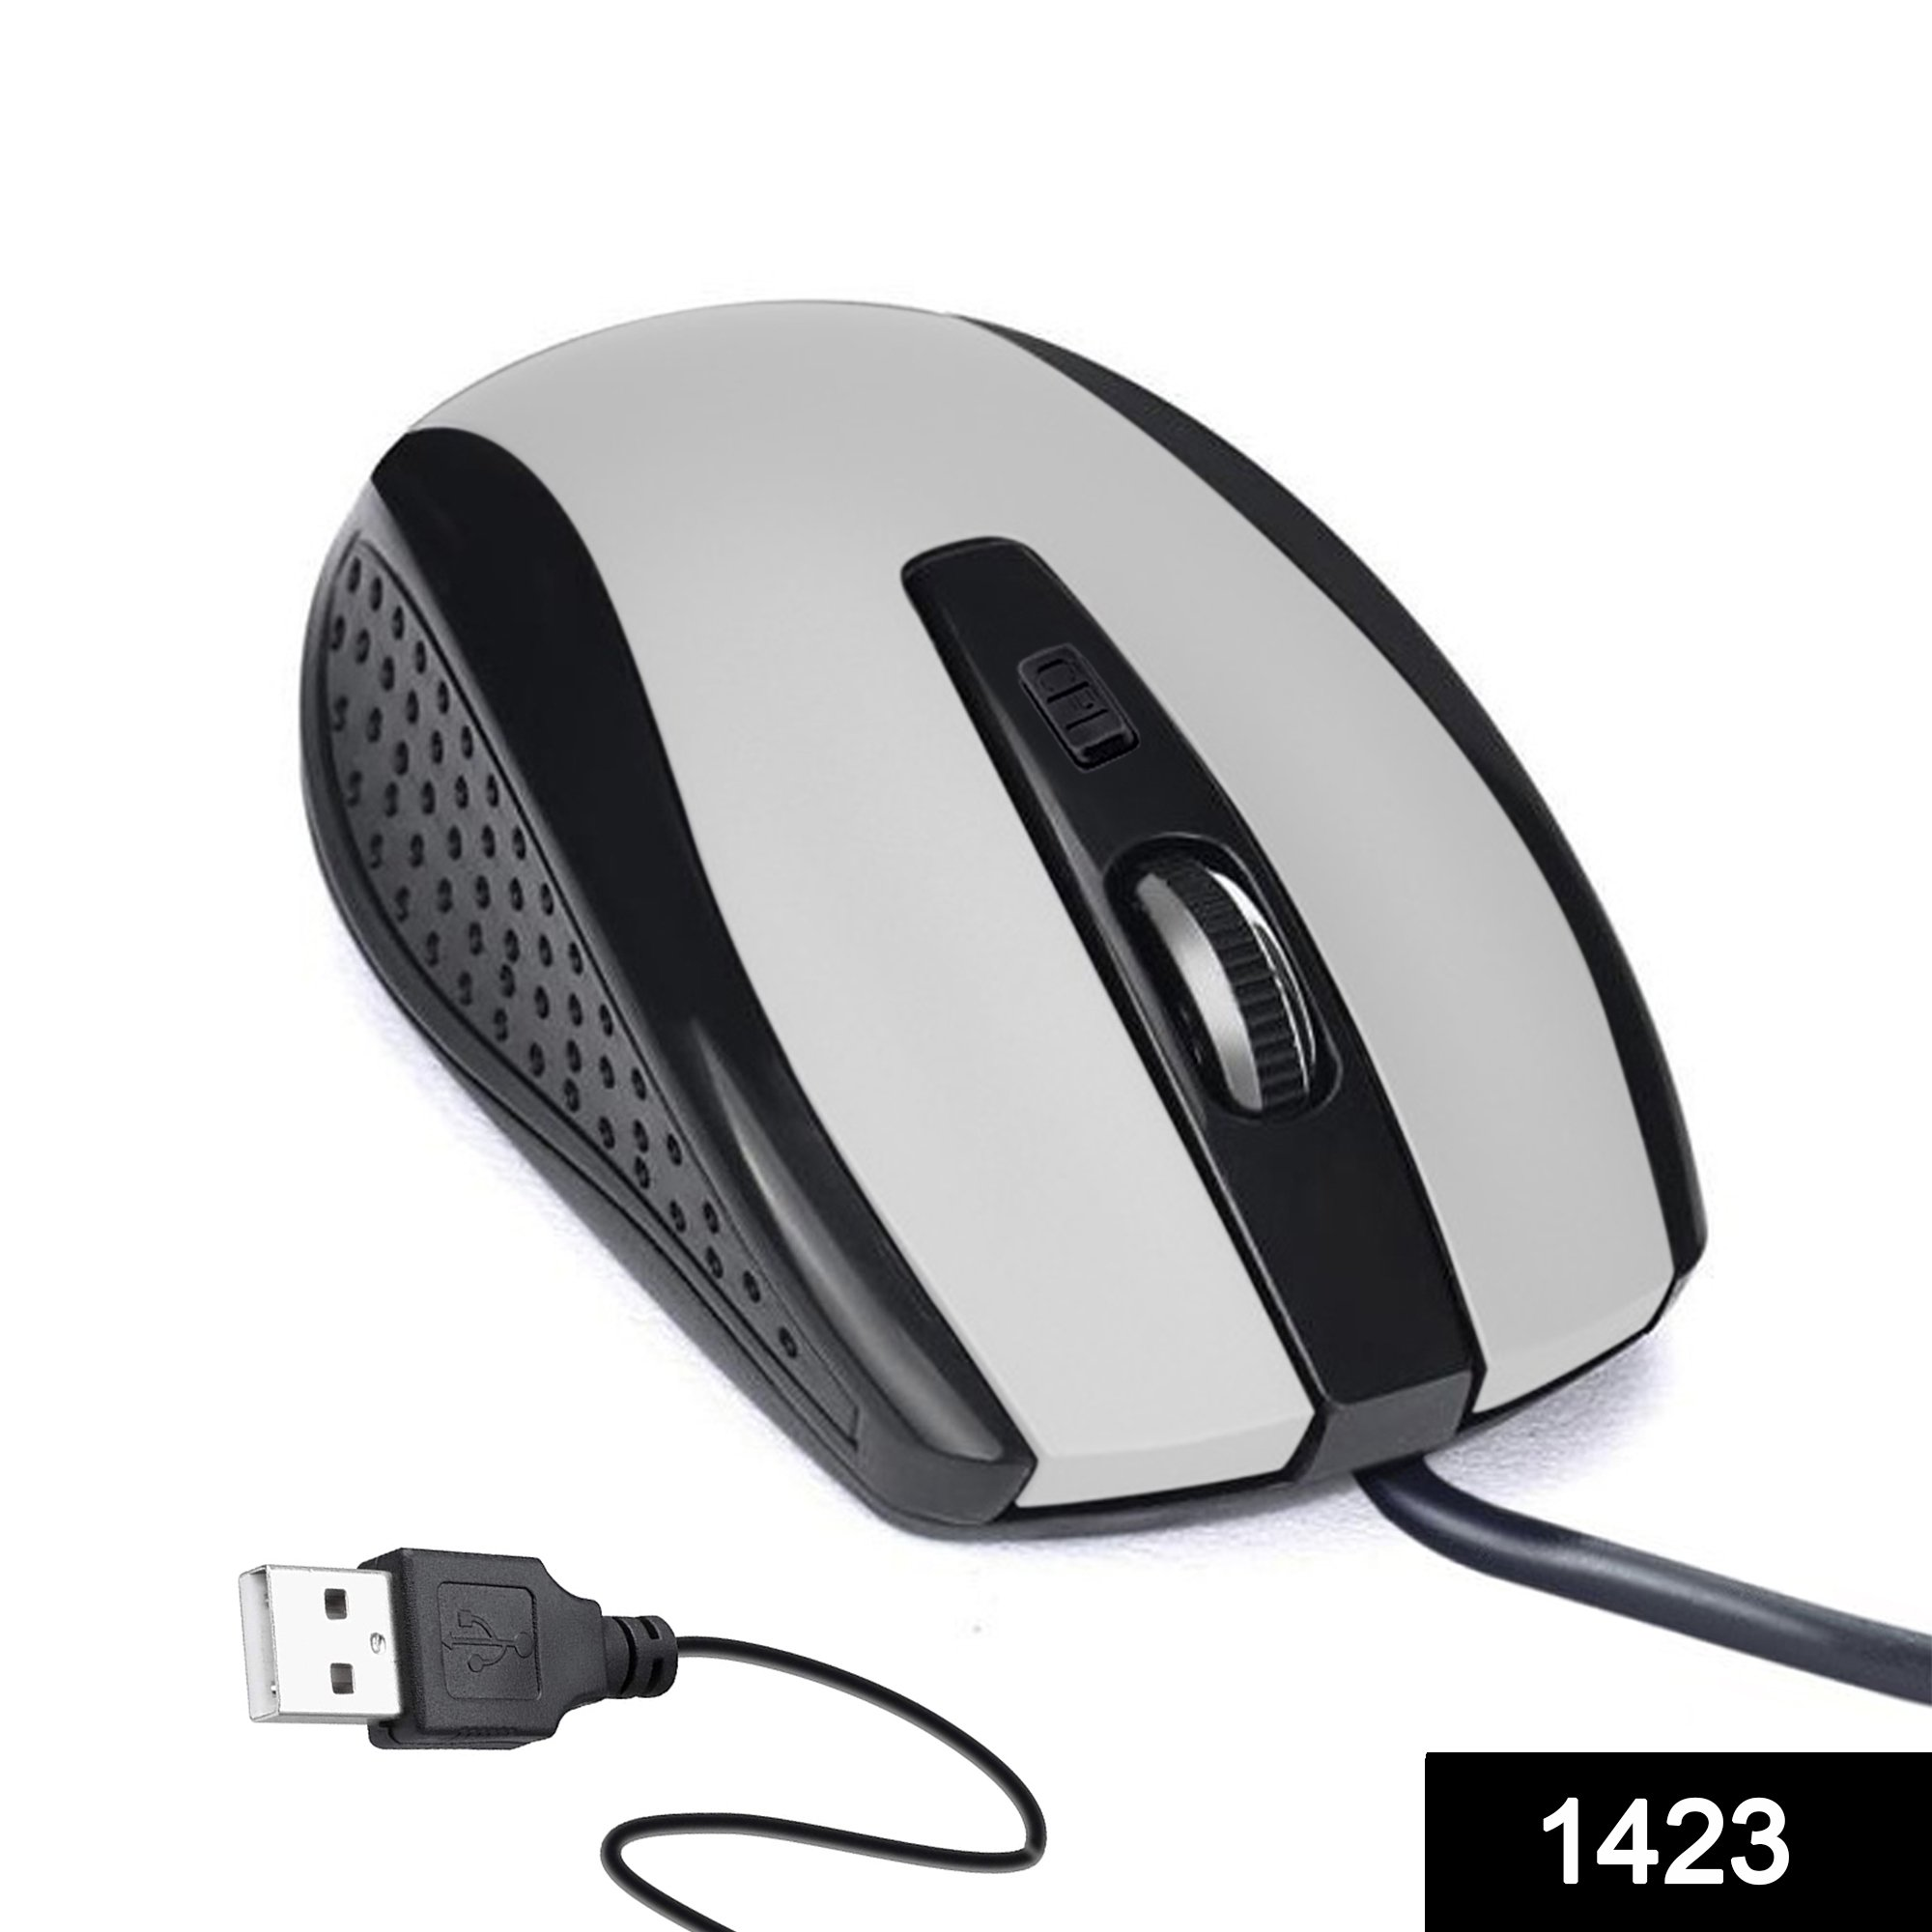 1423 Wired Mouse for Laptop and Desktop Computer PC With Faster Response Time (Silver) -